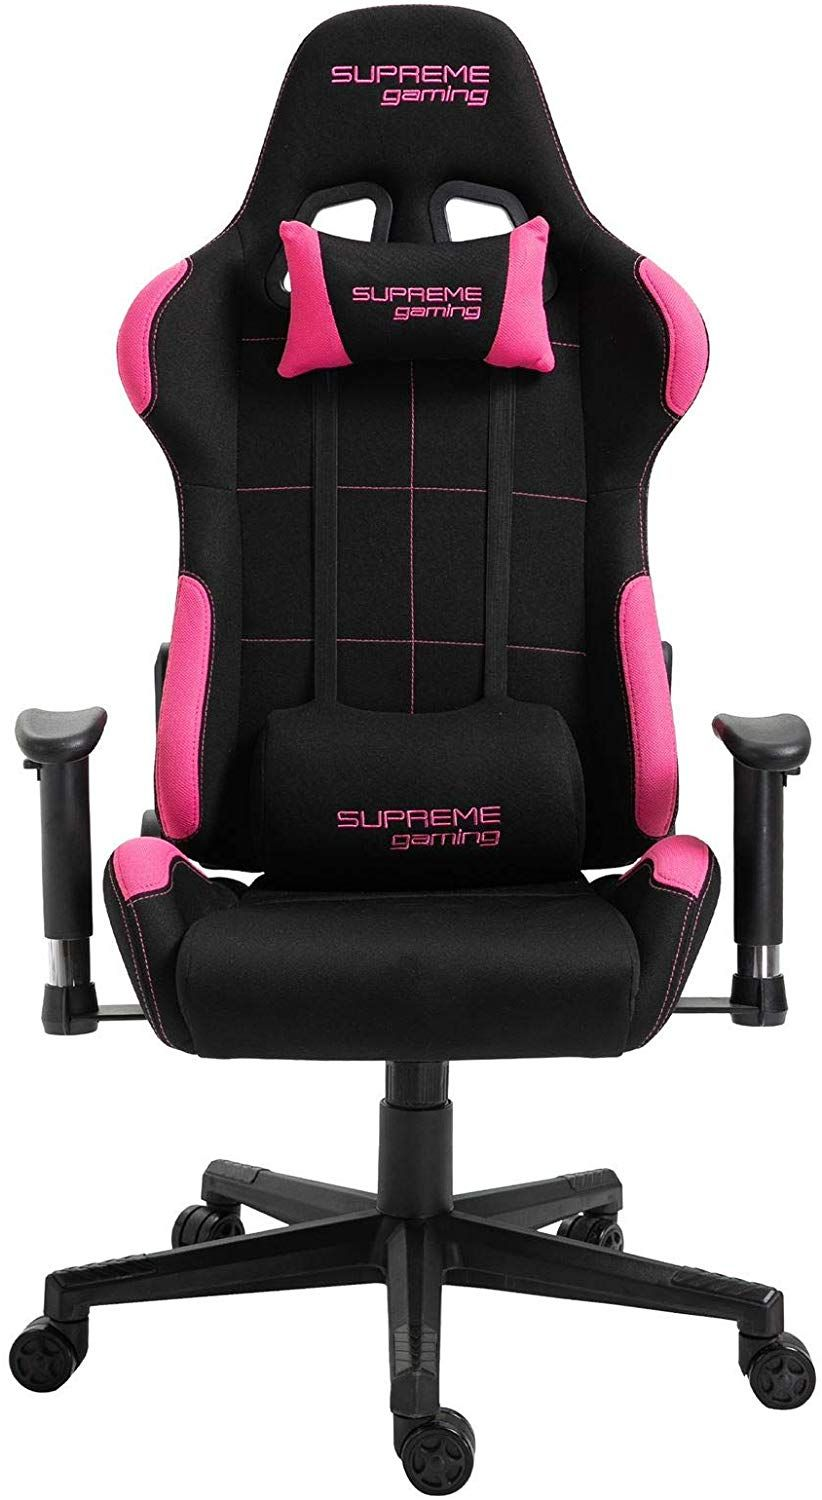 Idimex Chaise De Bureau Gaming Swift Racer Chair Style Racing Gamer Fauteuil Ergonomique Pivotant Siege A Roulettes Avec Dossier Inclinable Et Cou In 2020 Gaming Chair